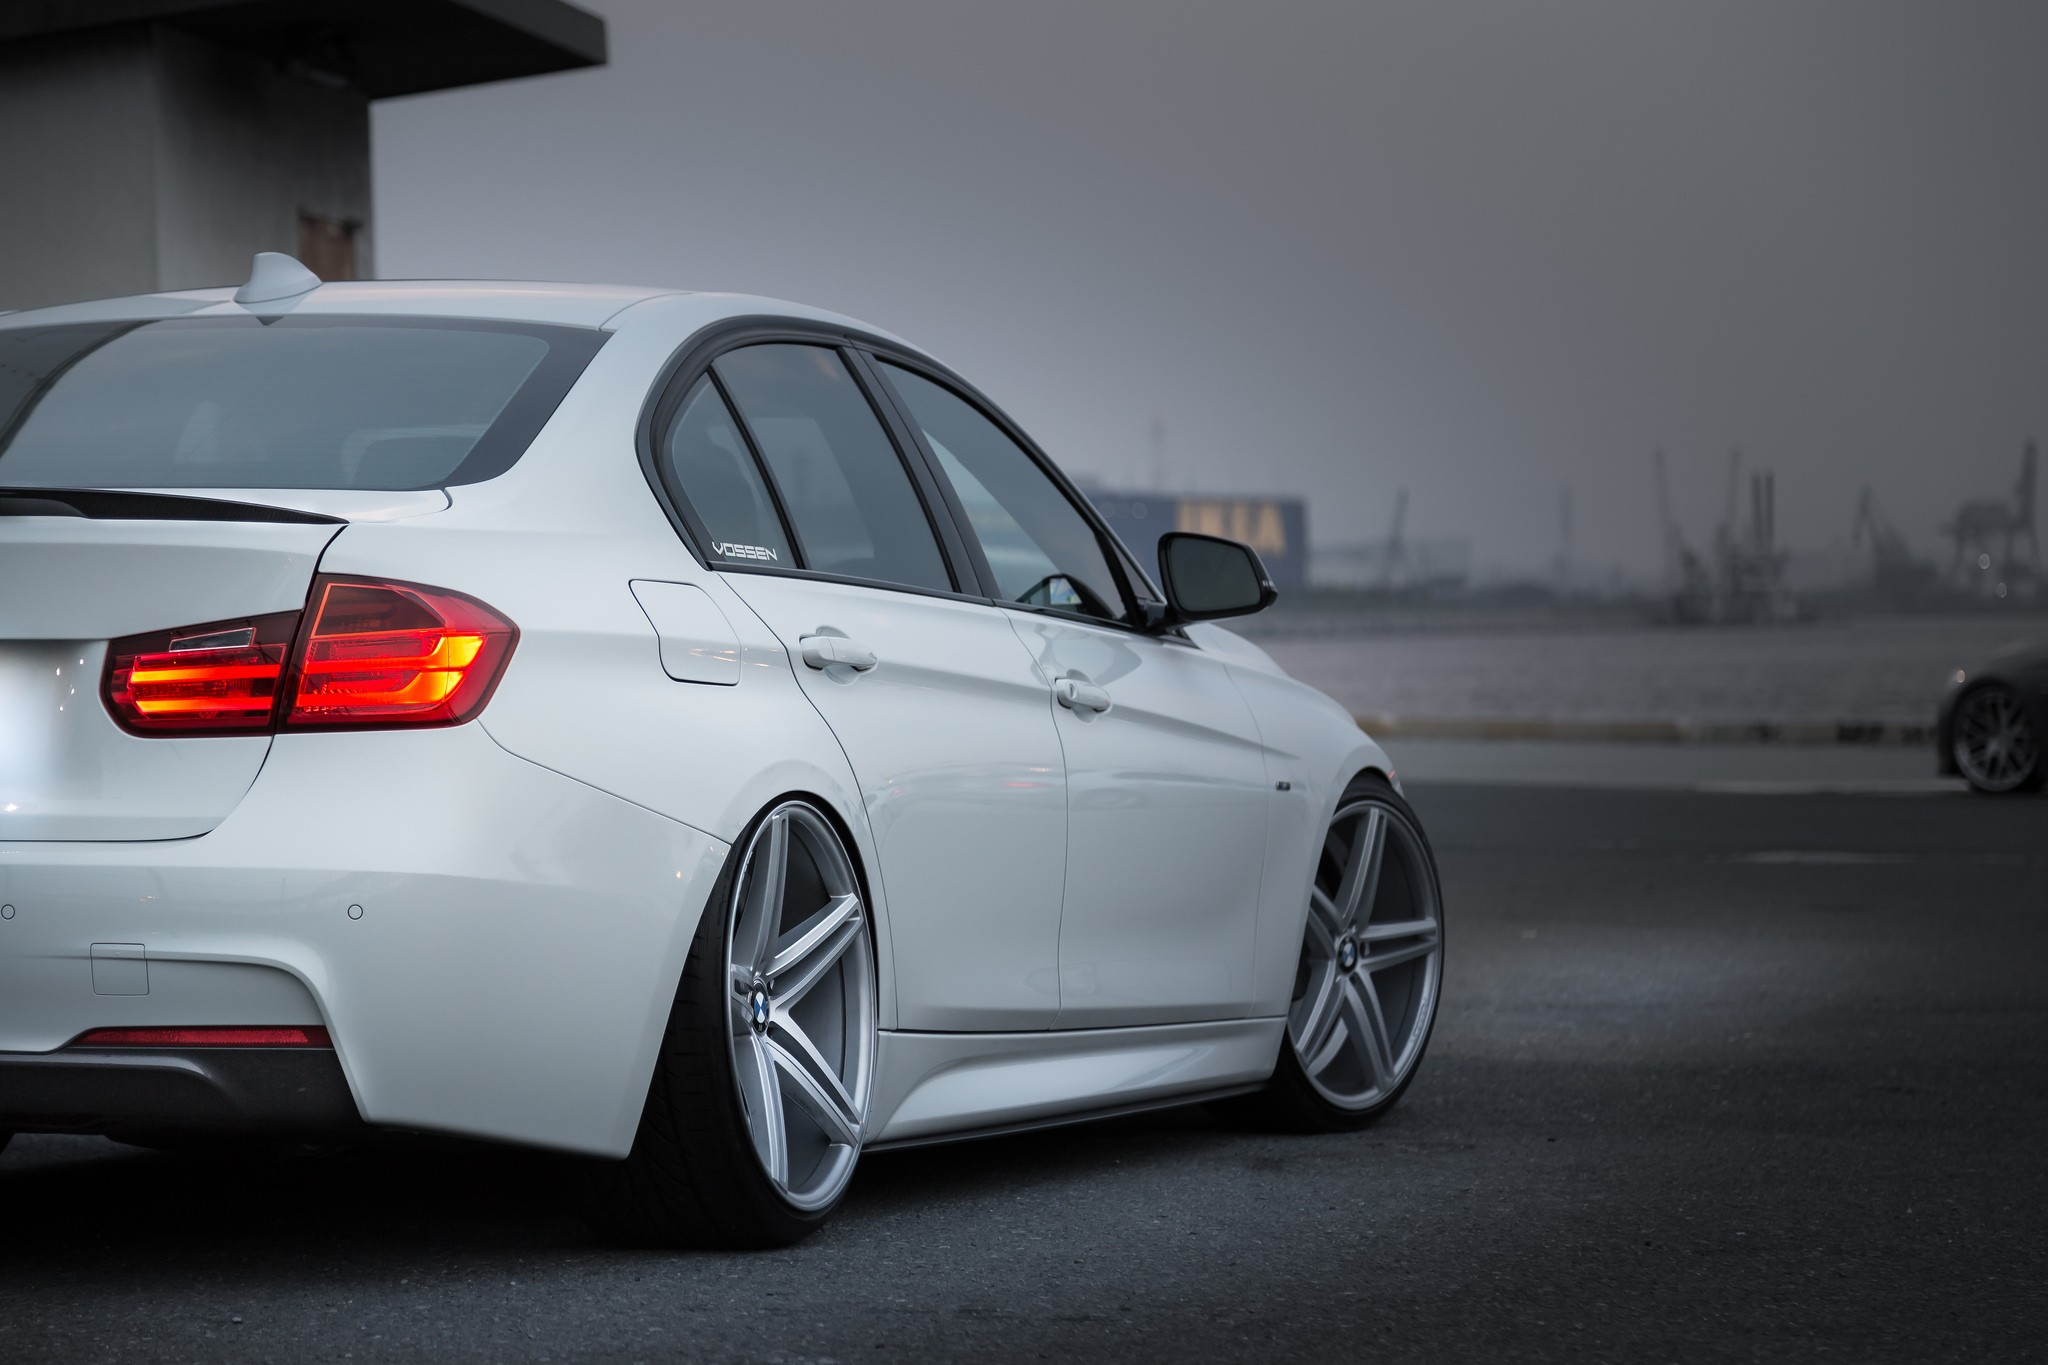 Full Hd Wallpaper For 5 Inch Screen Bmw Car Stance Simple Wheels Camber Vehicle White